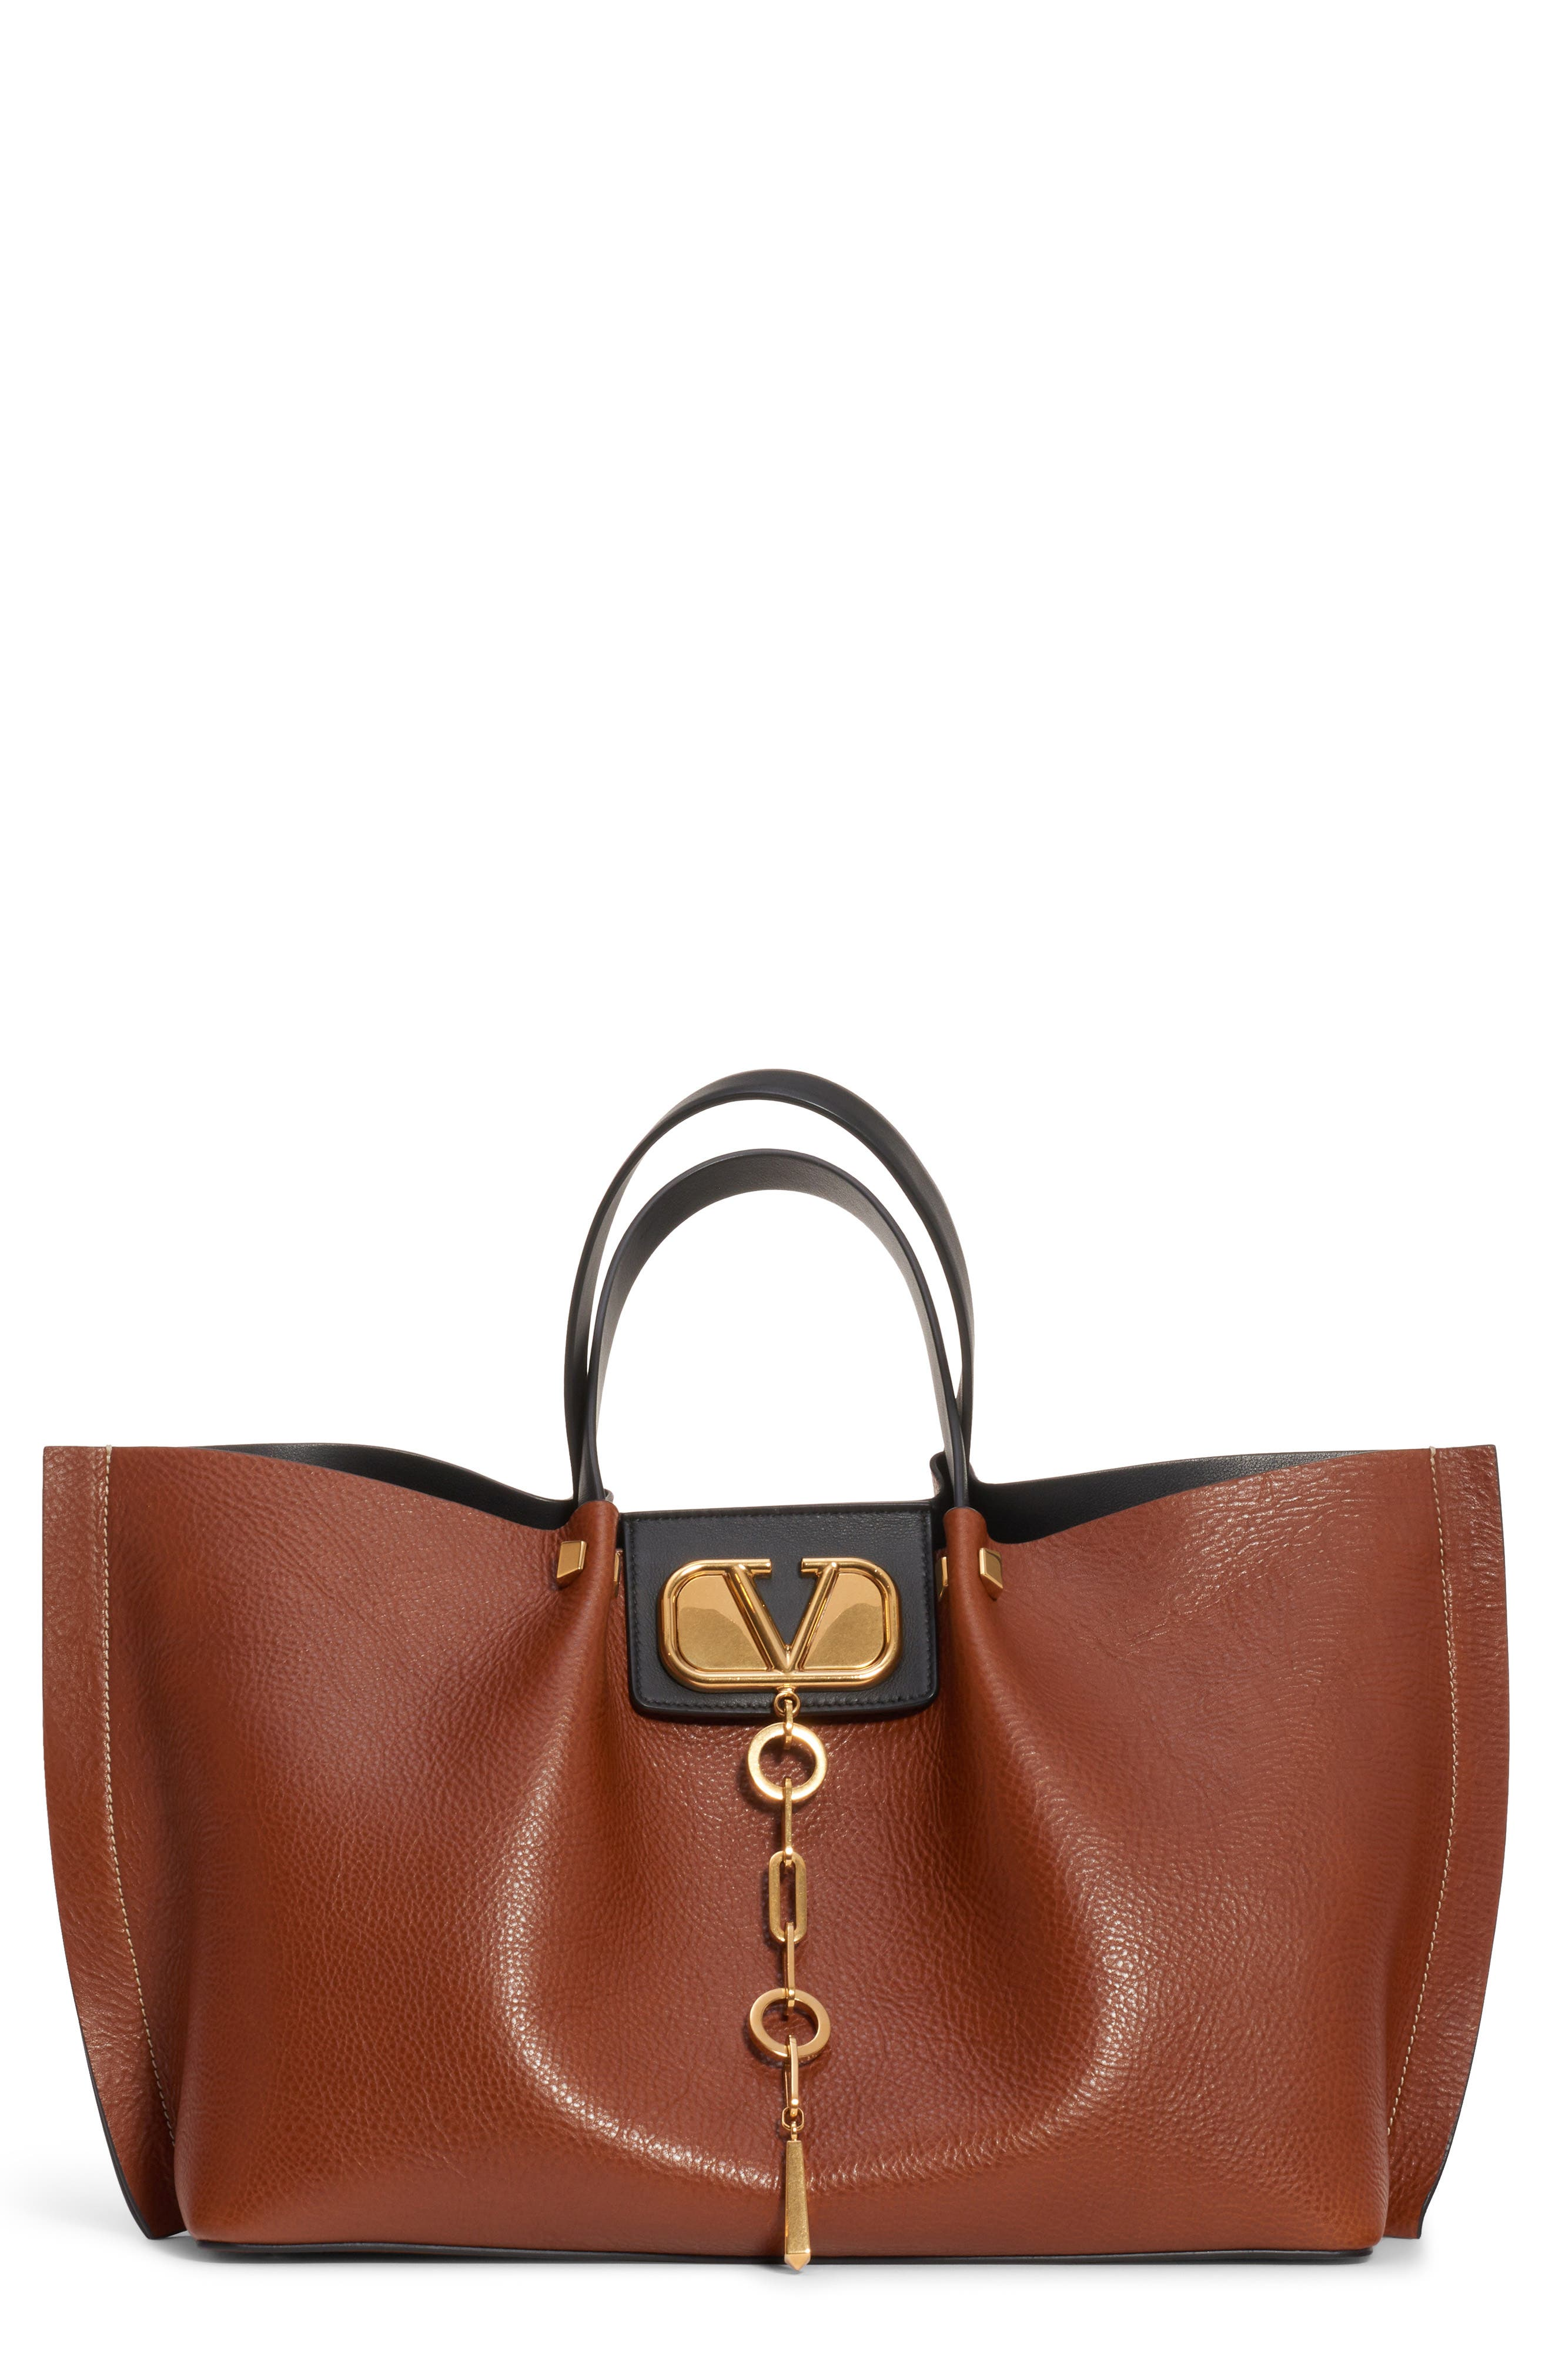 VALENTINO GARAVANI Medium Go Logo Leather Tote, Main, color, TAN/ NERO/ ROUGE PUR